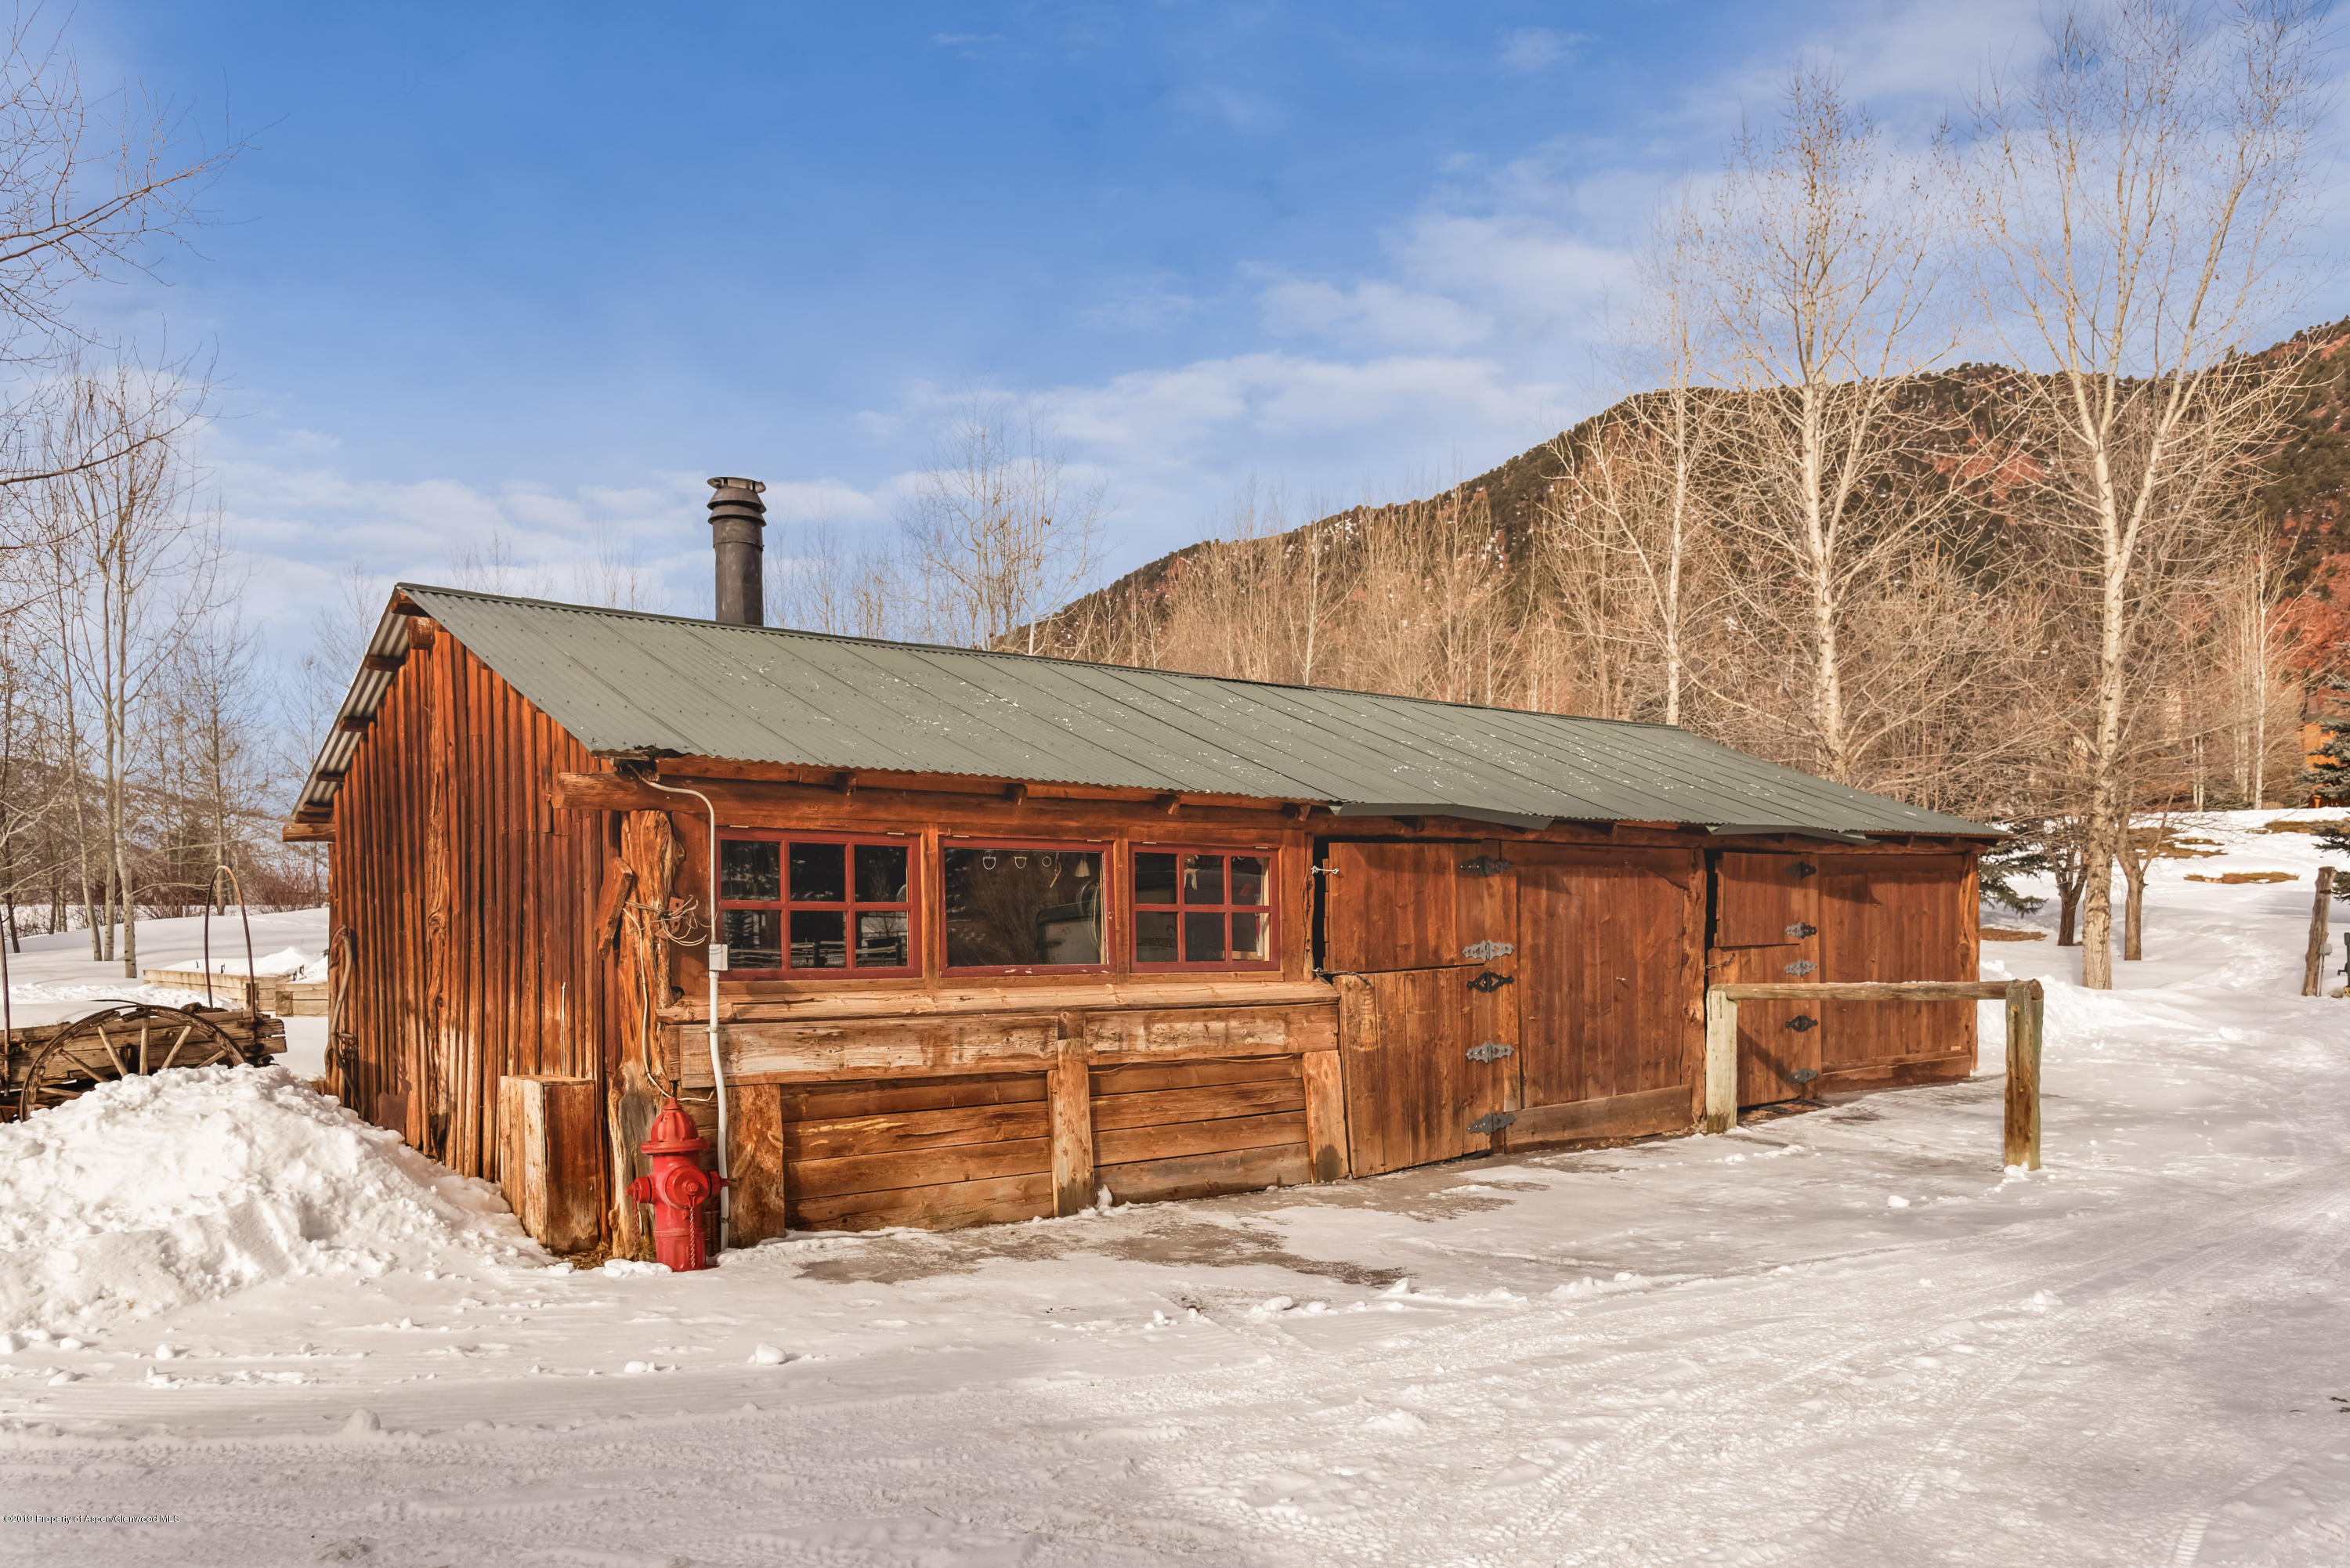 MLS# 135595 - 78 - 50 E River Ranch Road, Snowmass, CO 81654